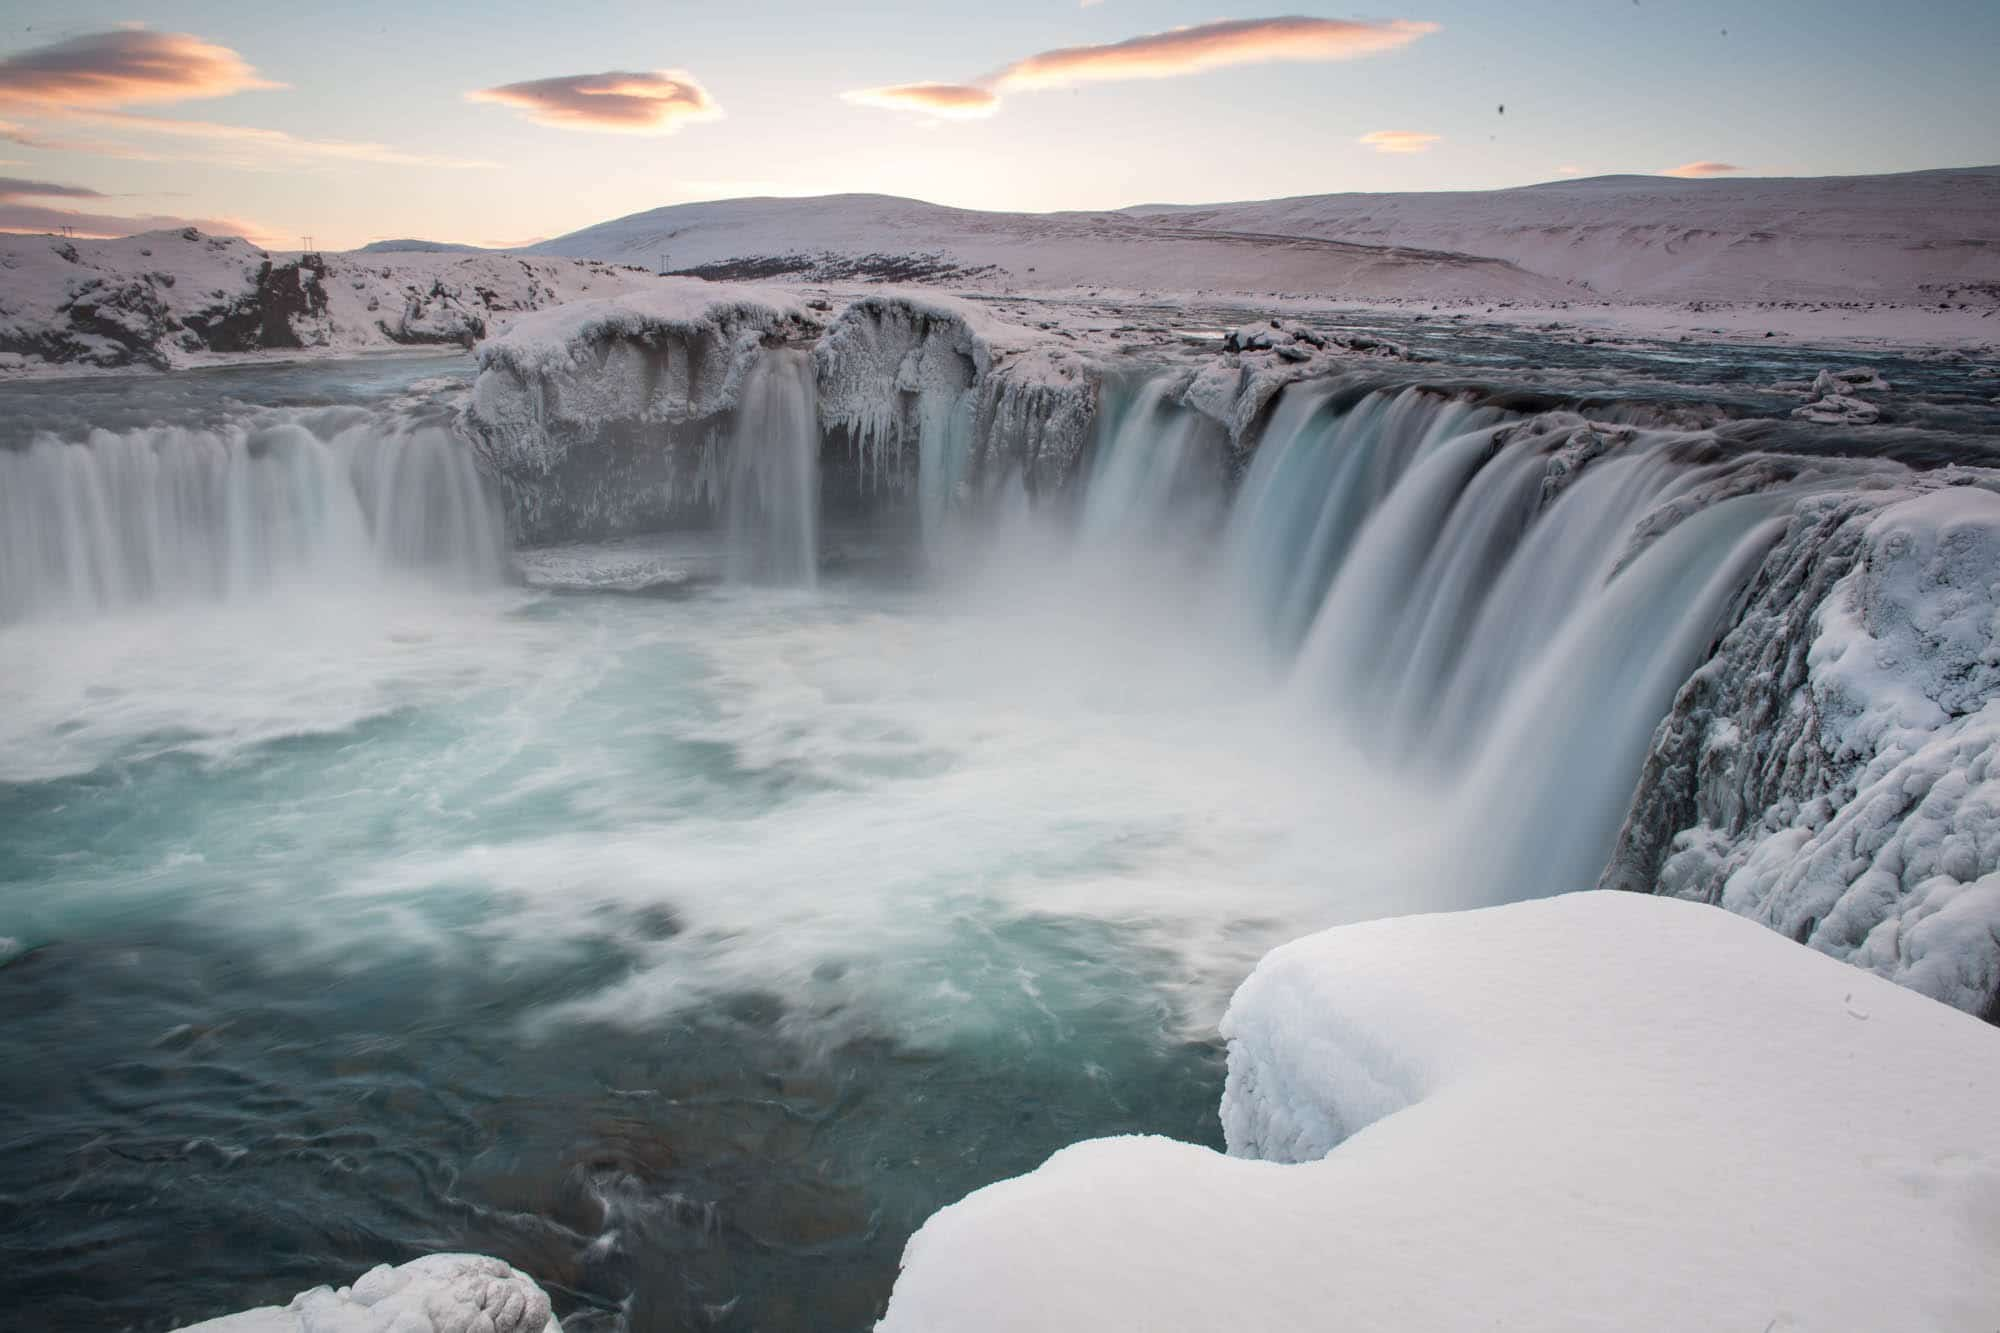 Godafoss waterfall in winter - North Iceland winter